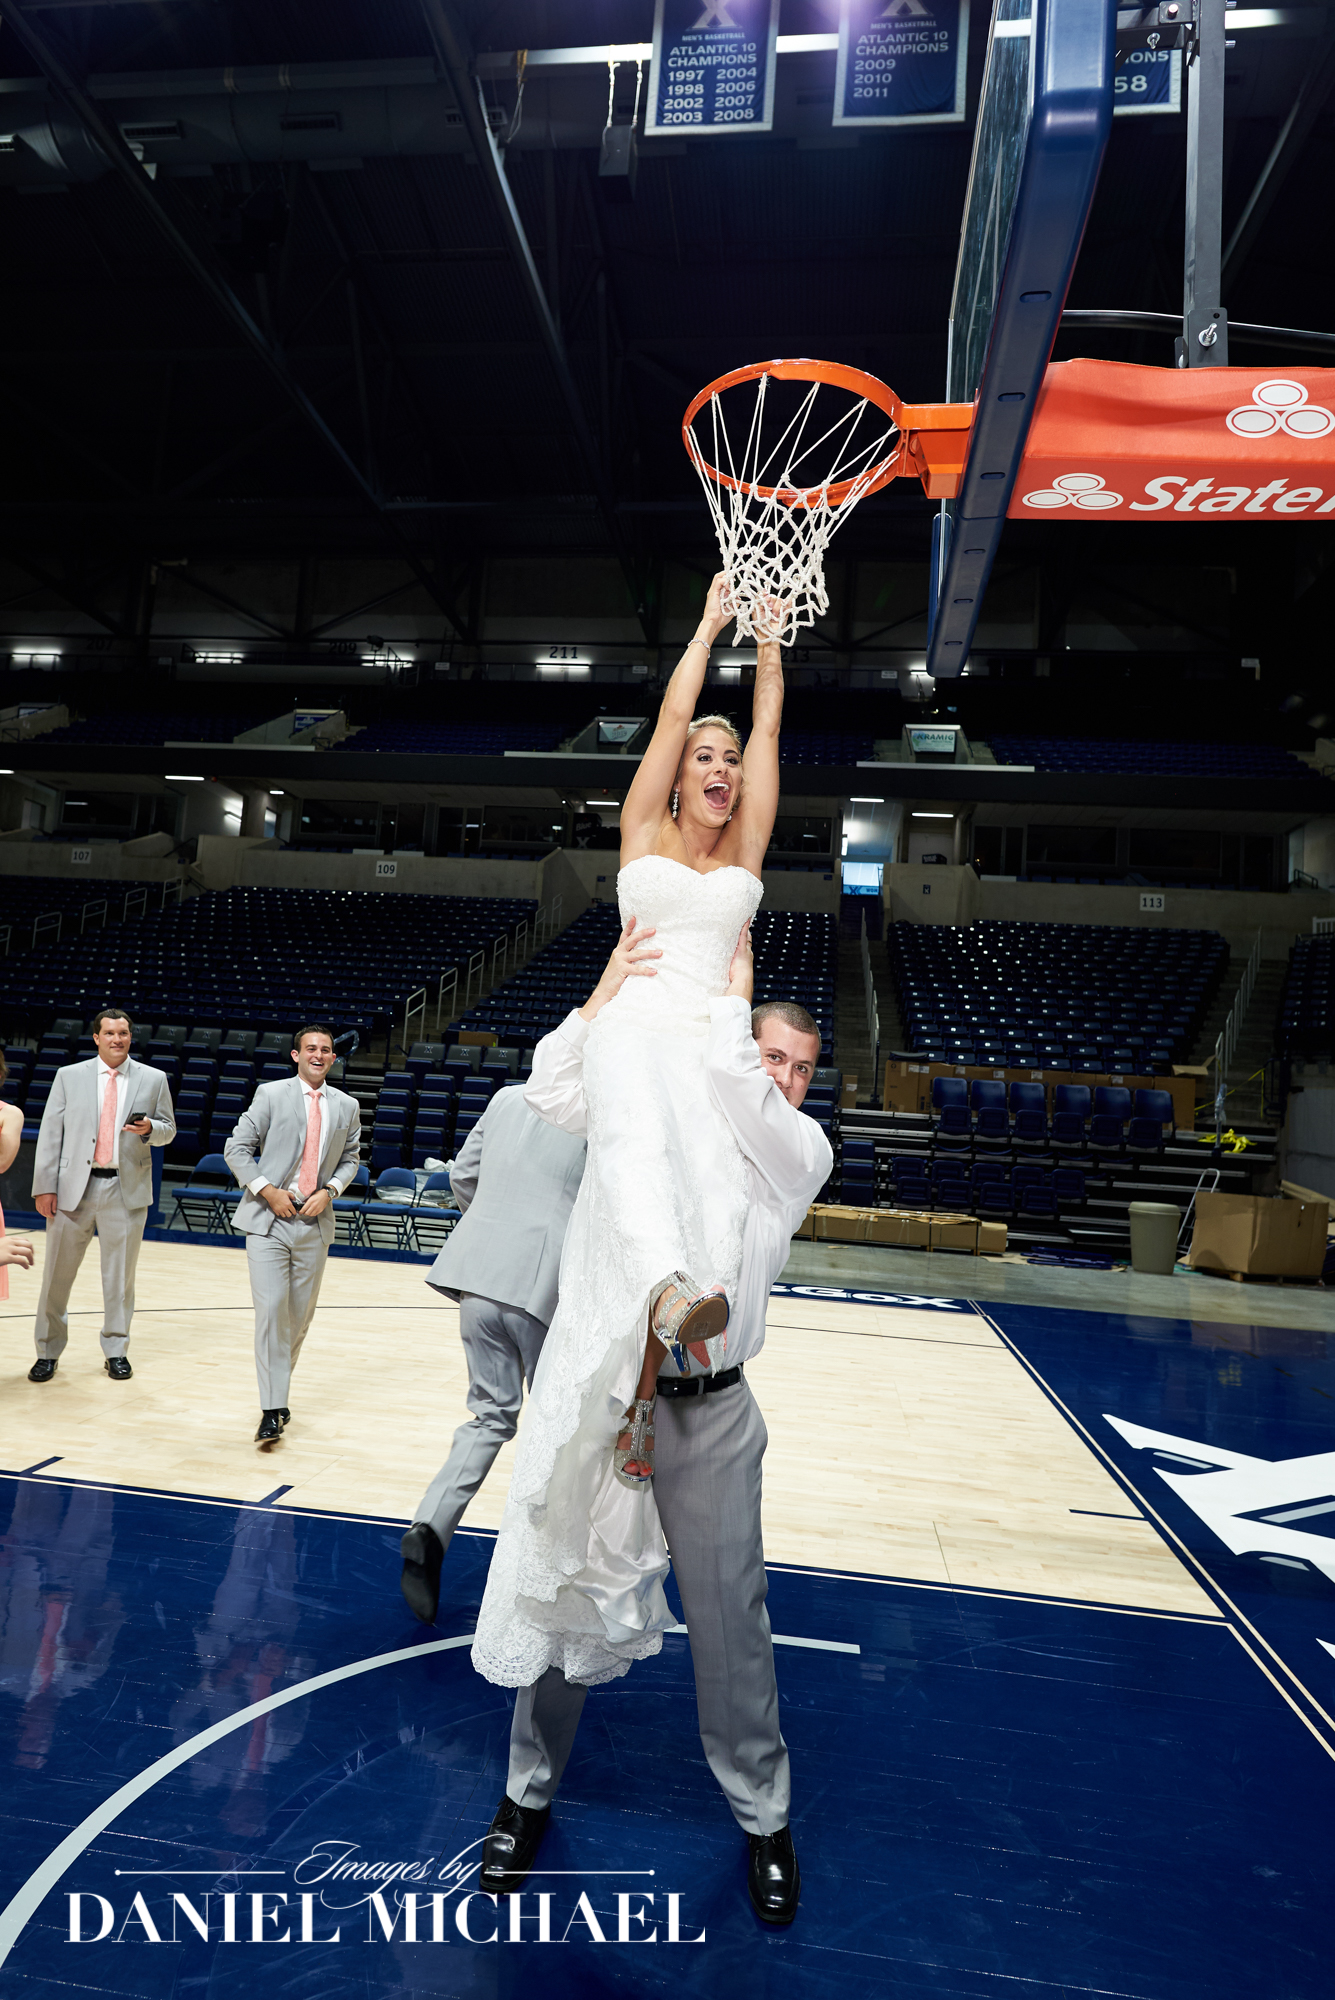 Wedding Photos on Court Cintas Center